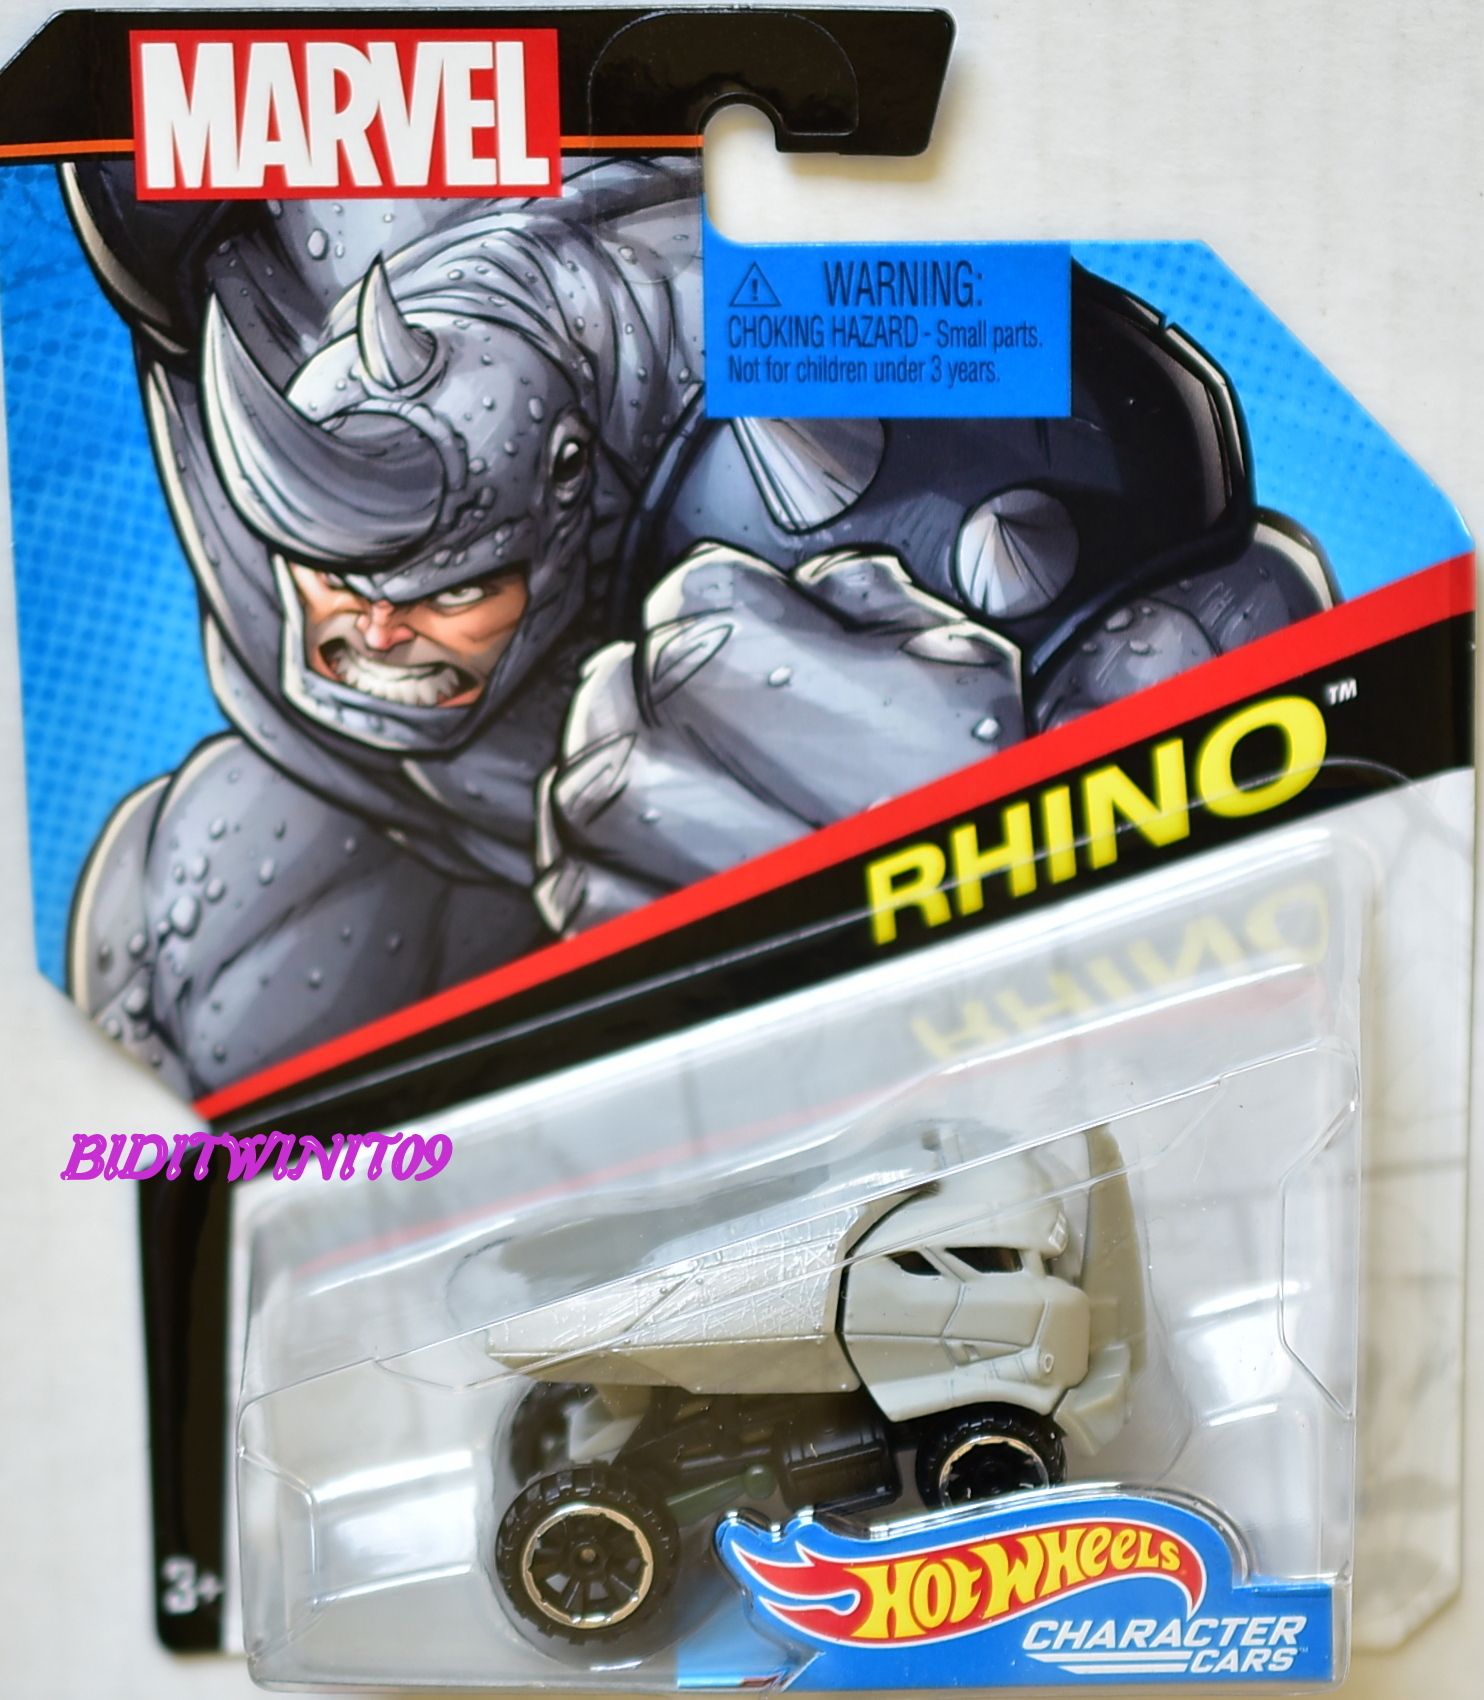 HOT WHEELS 2017 MARVEL CHARACTER CARS RHINO